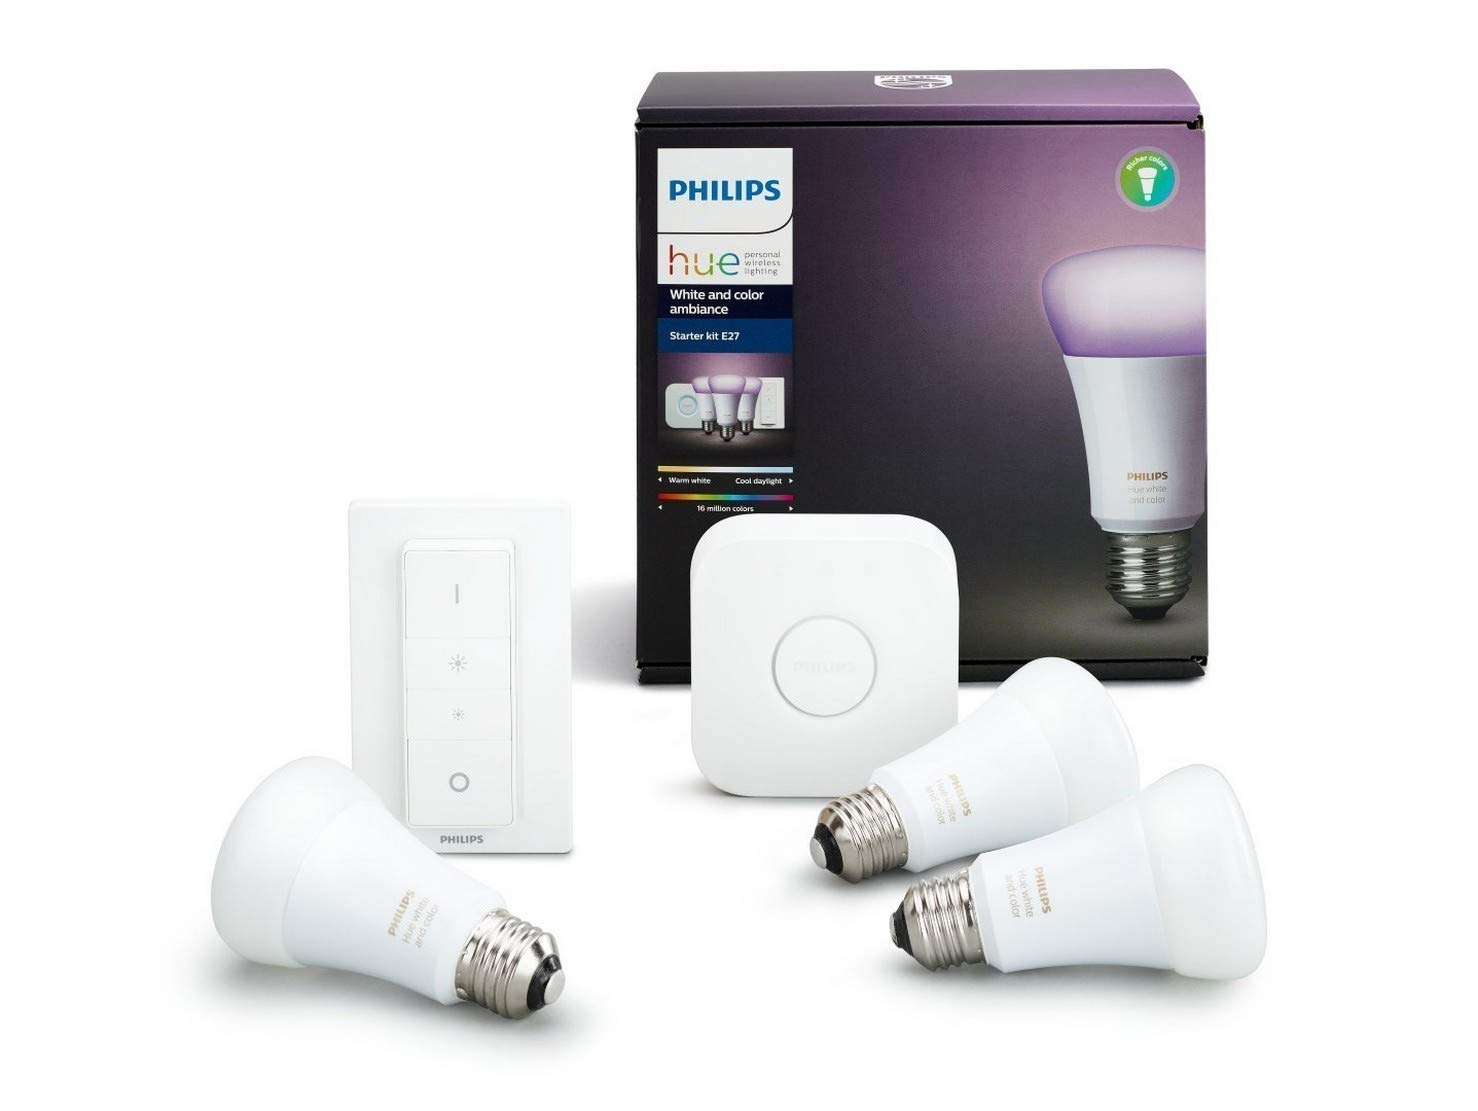 Philips Hue White and Color Ambiance - Kit de 3 bombillas LED E27 con puente y mando, 9.5 W, iluminación inteligente, cambian de color, compatible con ...